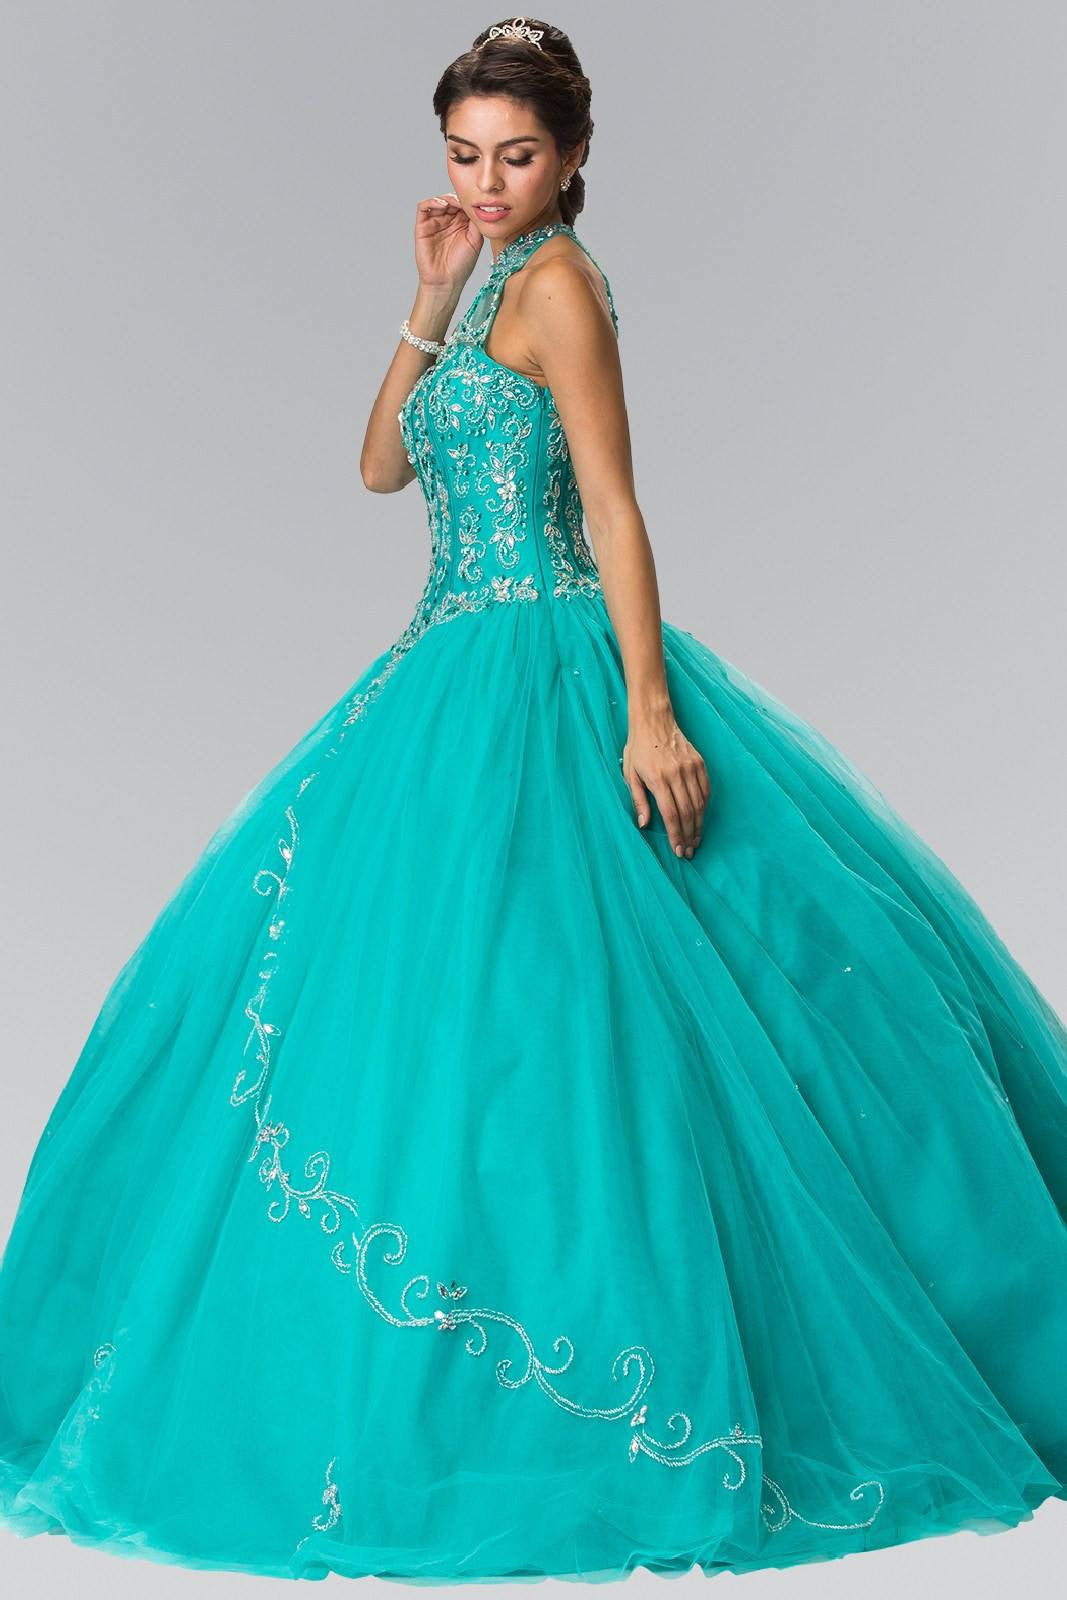 5a4b08dd44d Cheap Ball gown prom dress Quinceanera sweet 16 dress gl2348aq - Simply Fab  Dress ...